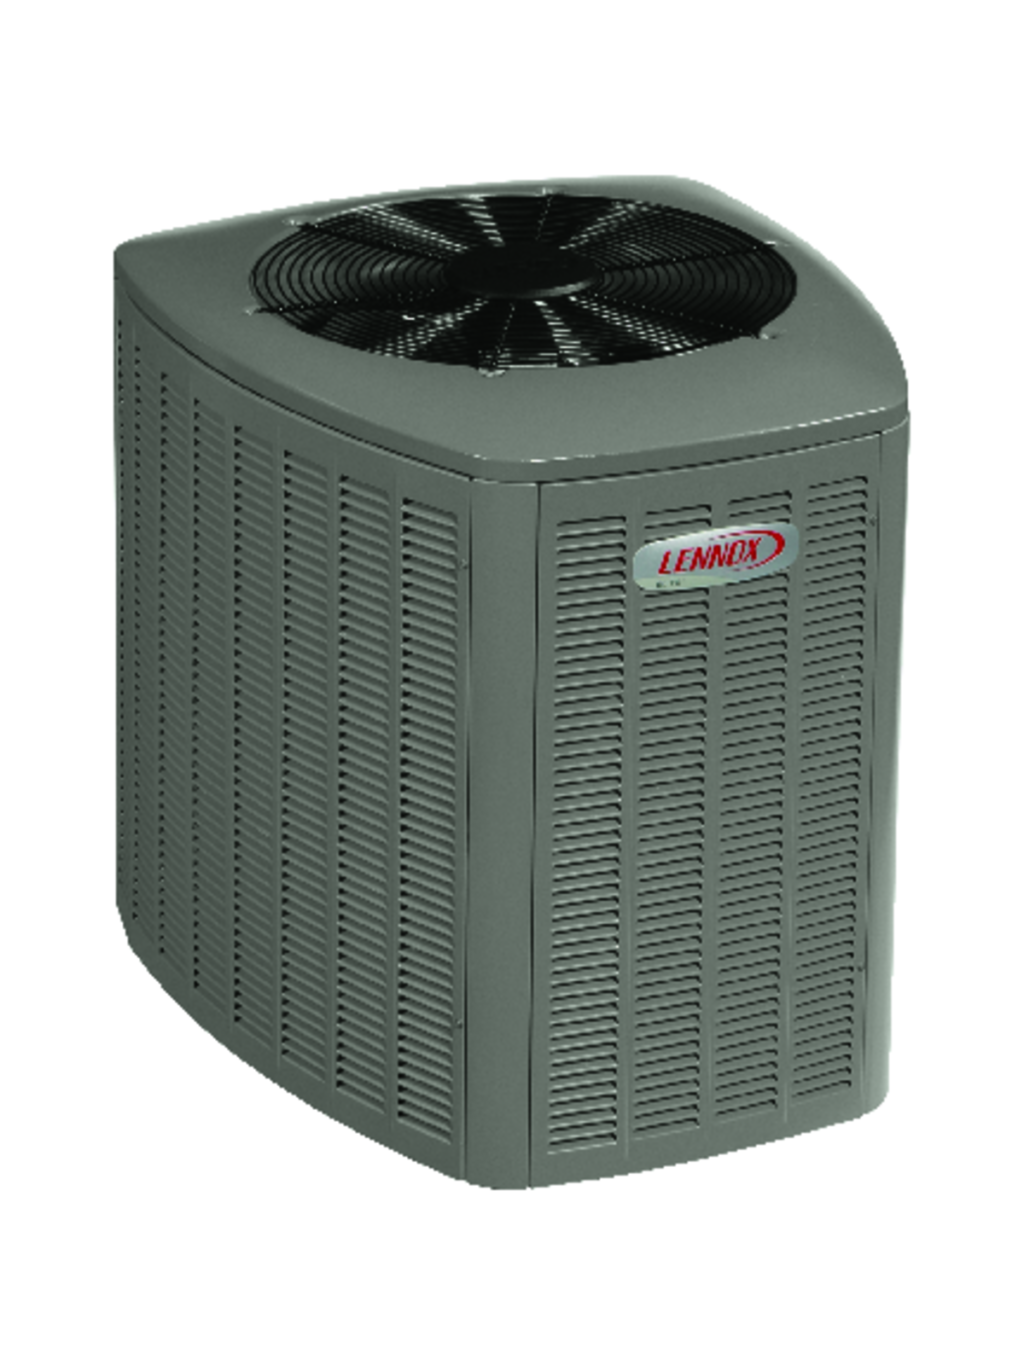 heat pumps sedro-woolley wa